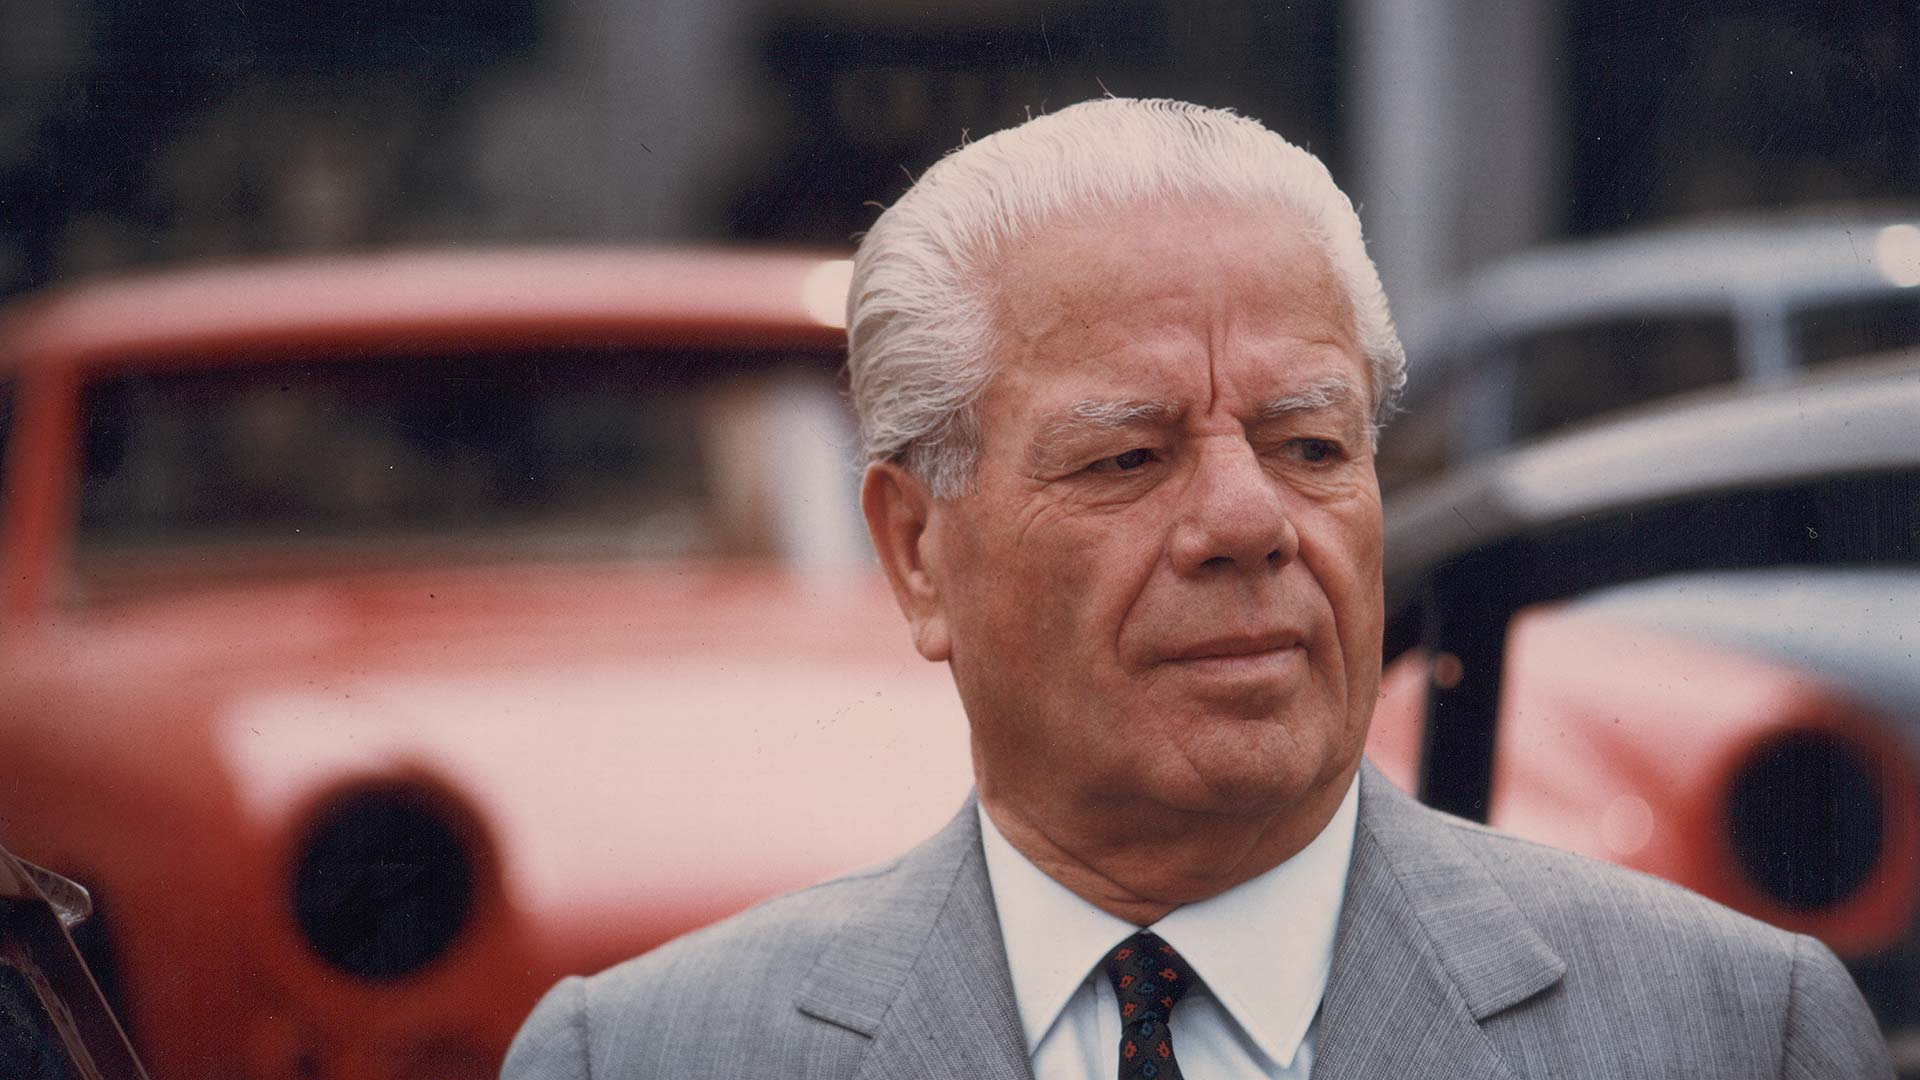 Battista Pinin Farina in 1963